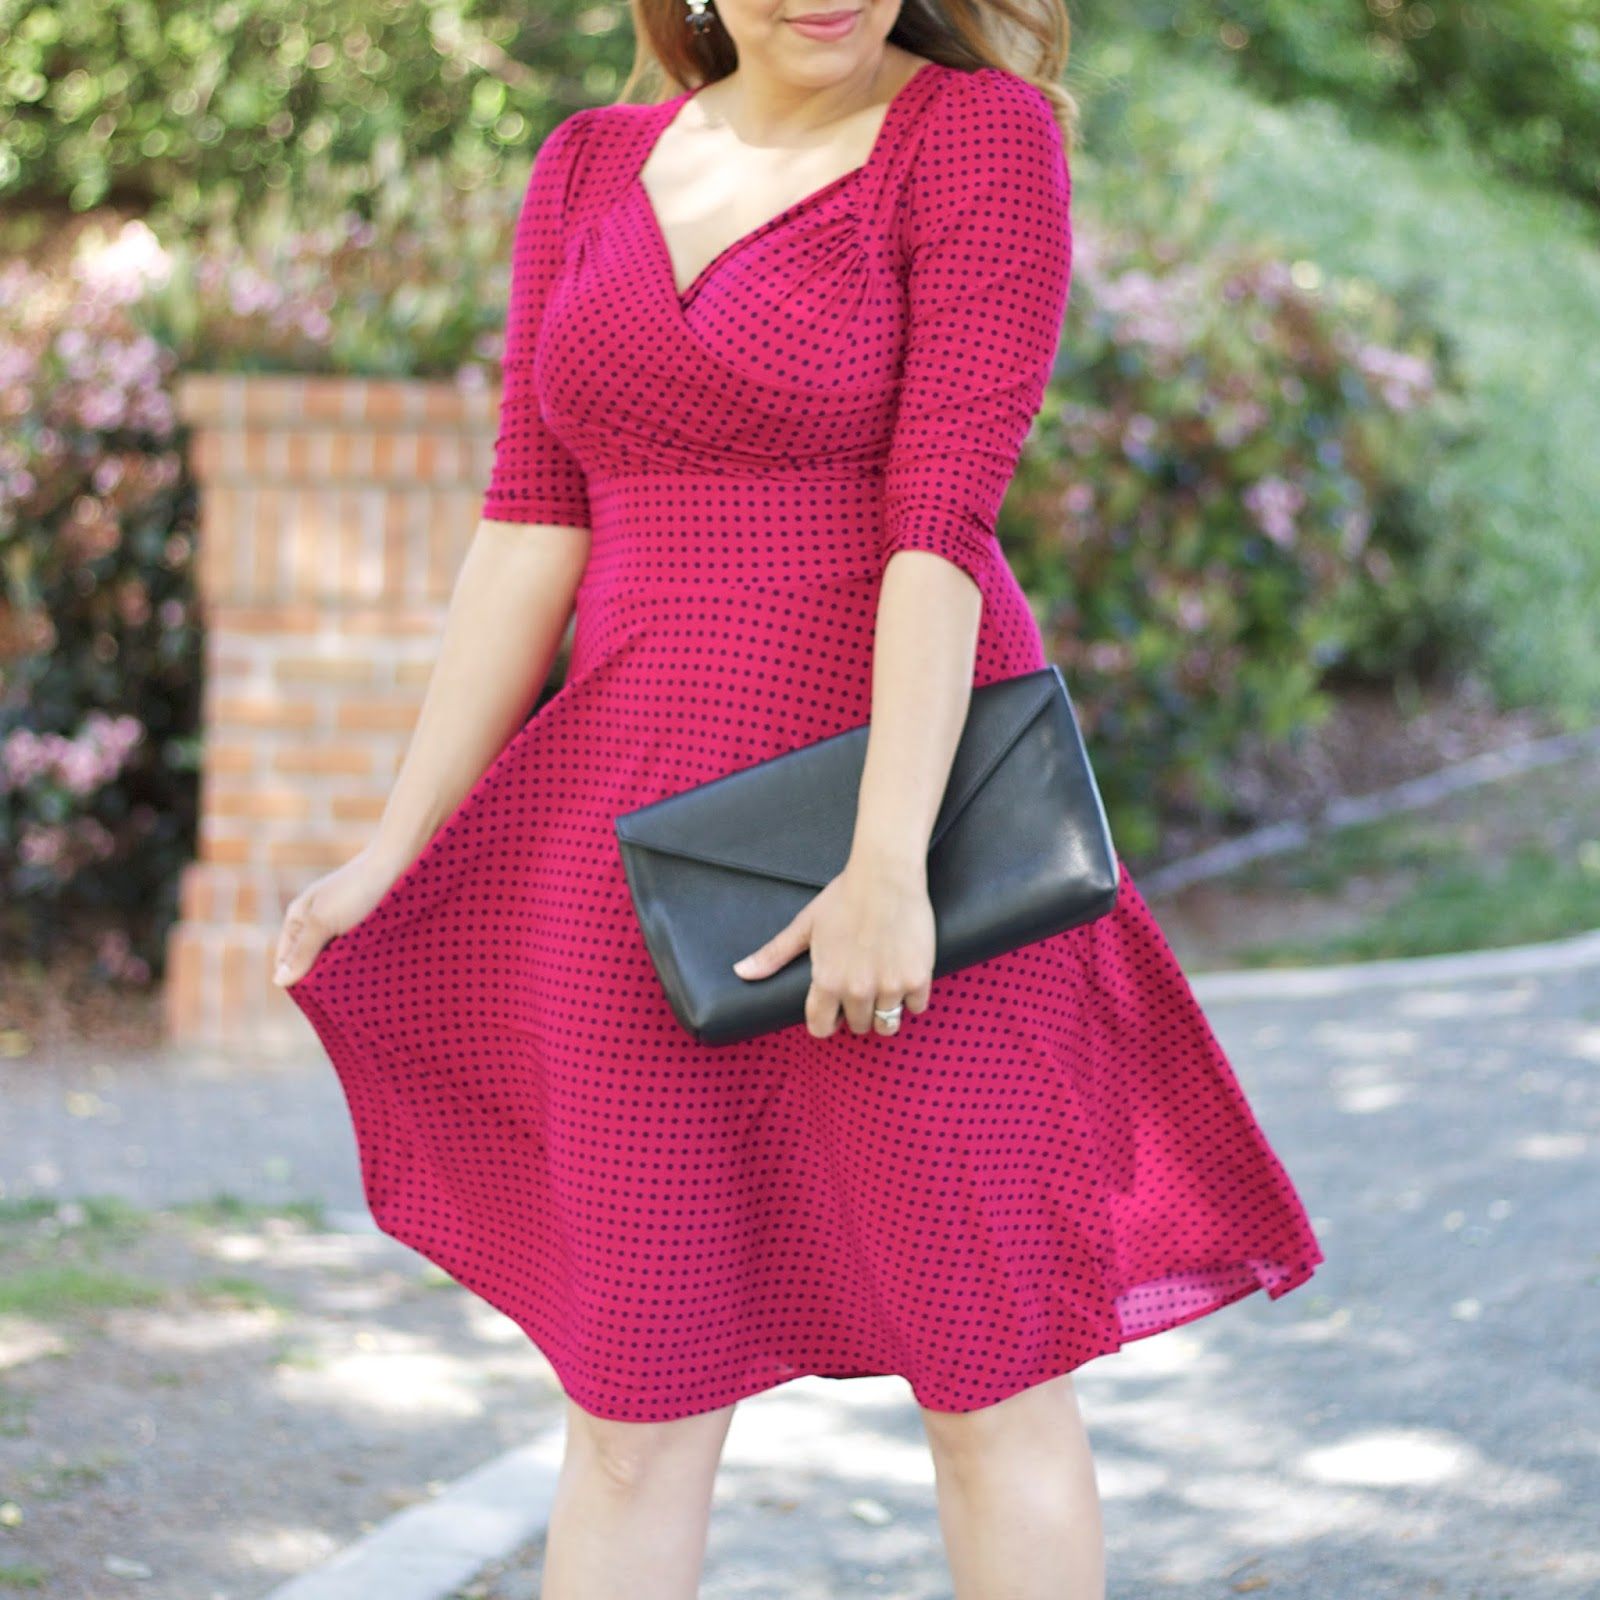 cool and comfy dresses, polka dot dress, karina dresses blogger, karina dresses amabassador